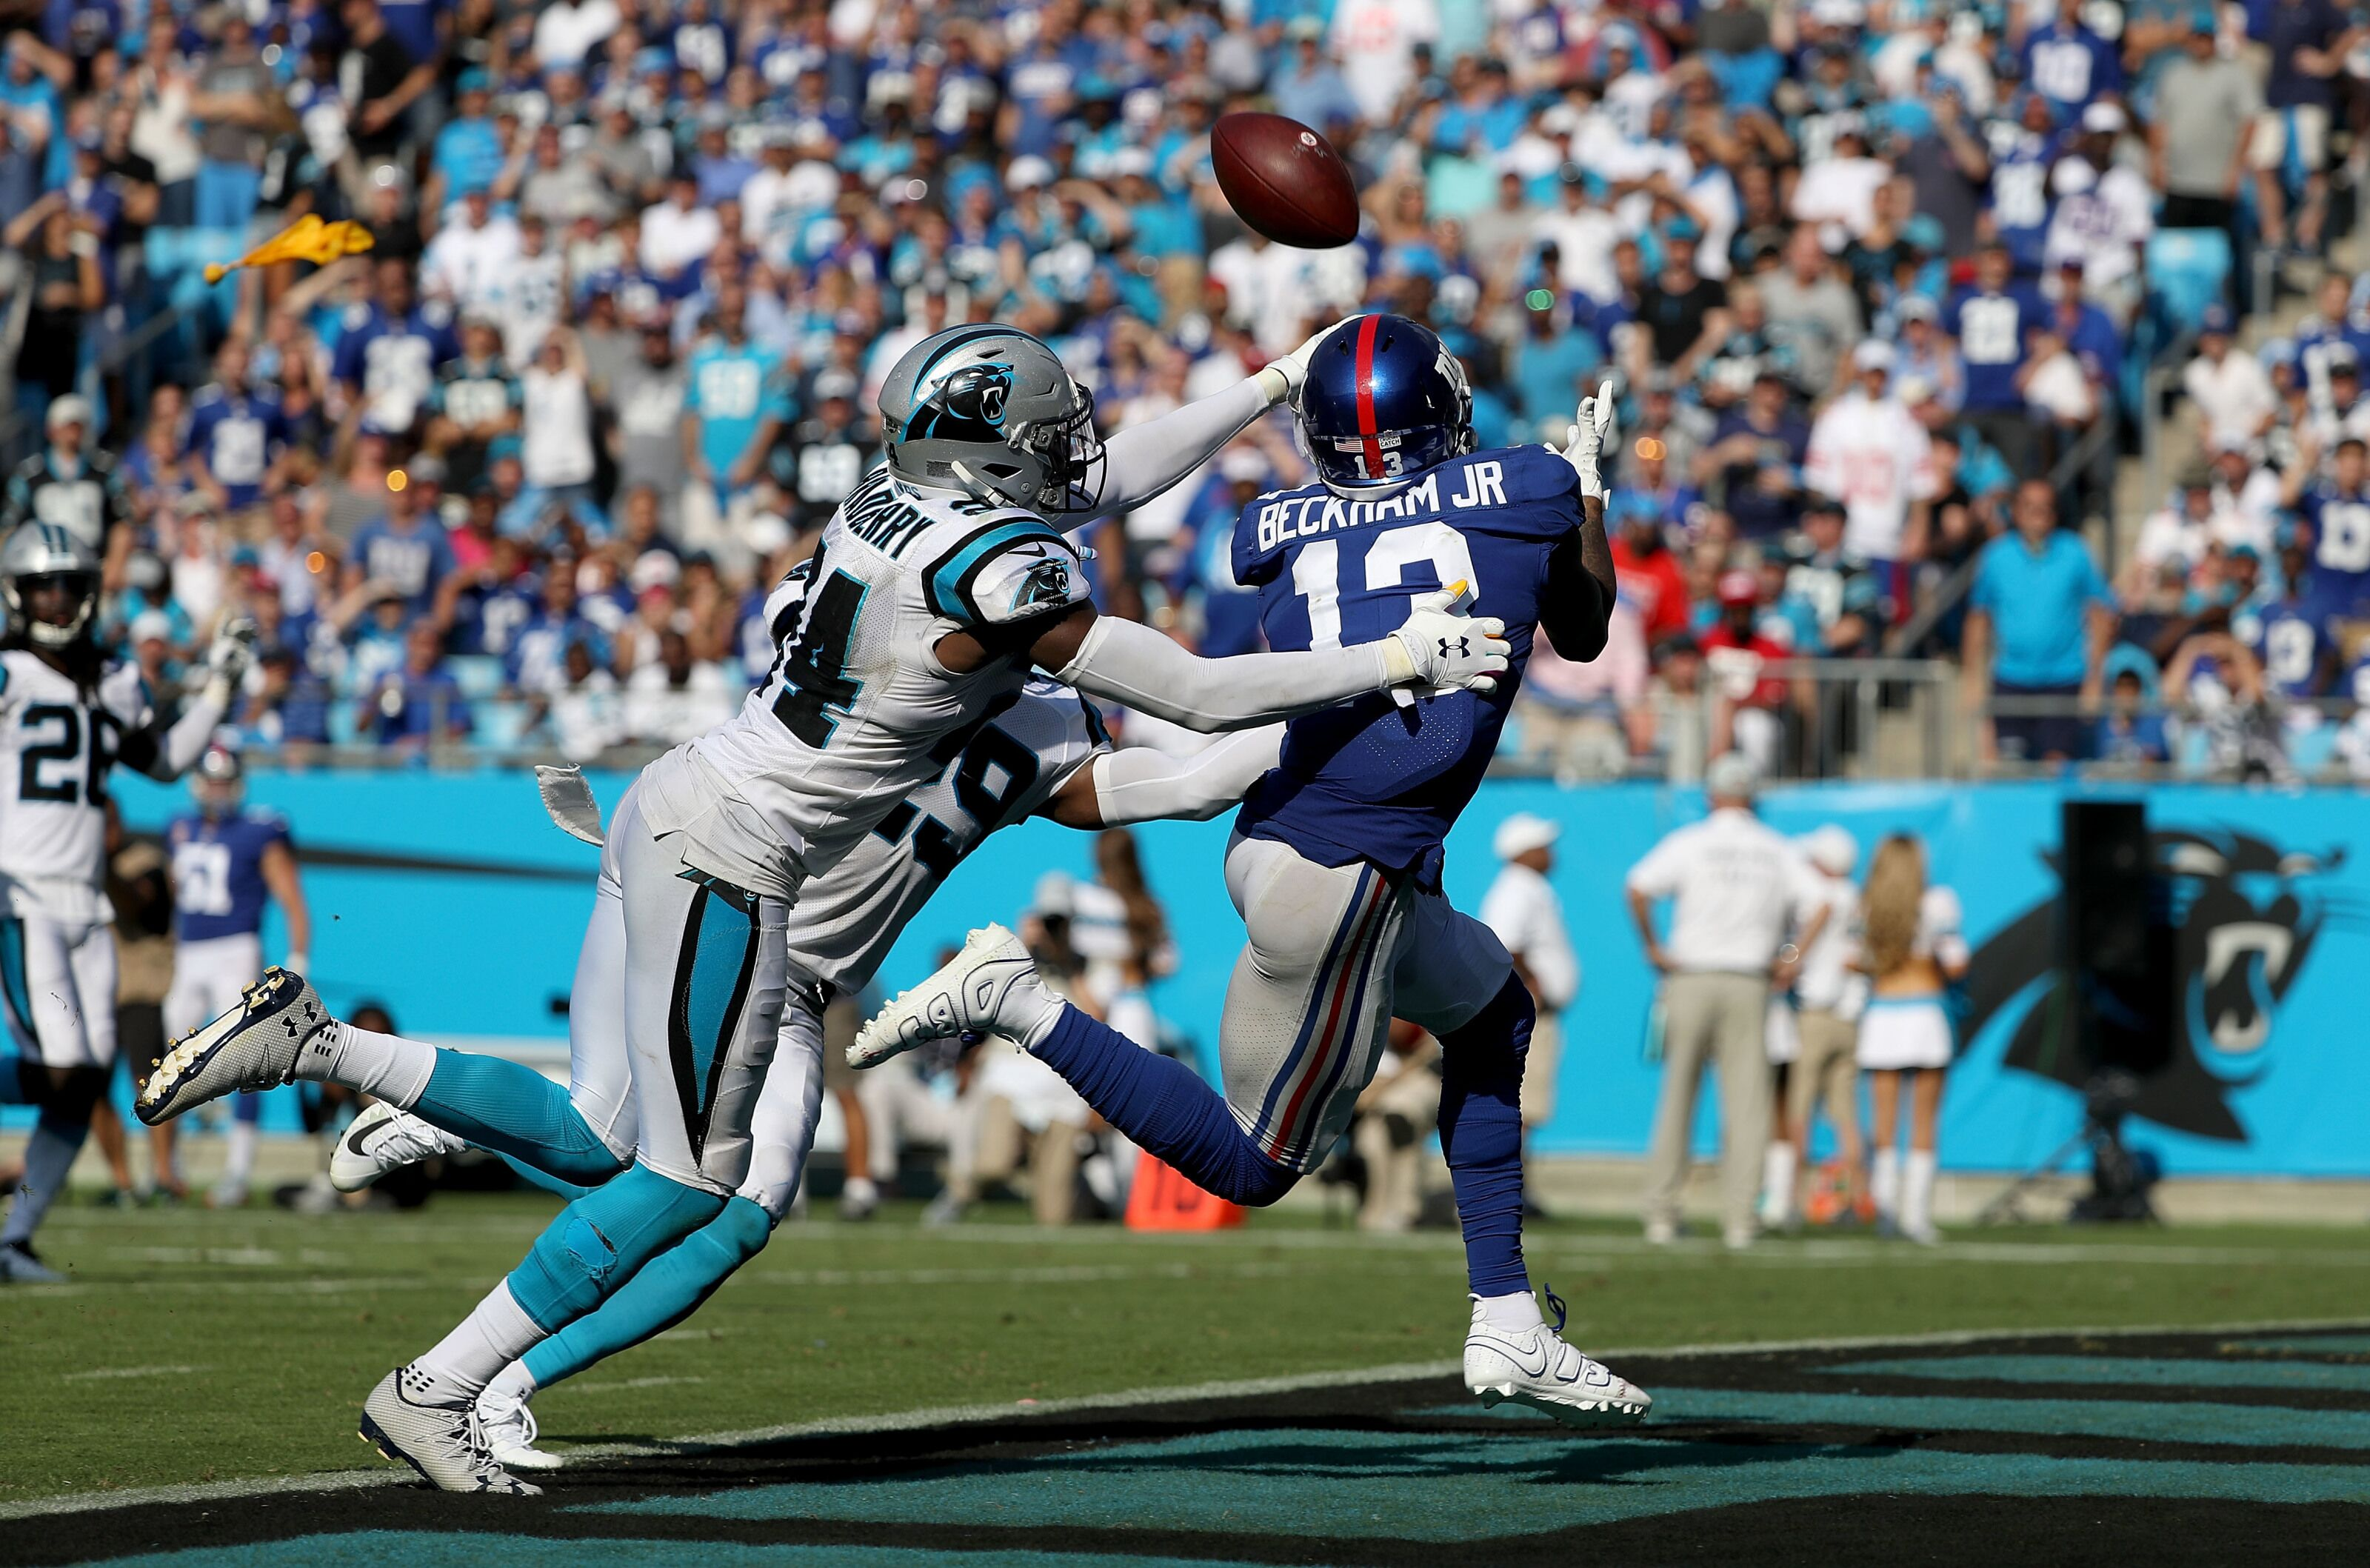 d3d0ec9f New York Giants: 3 Standouts vs. Panthers in Week 5